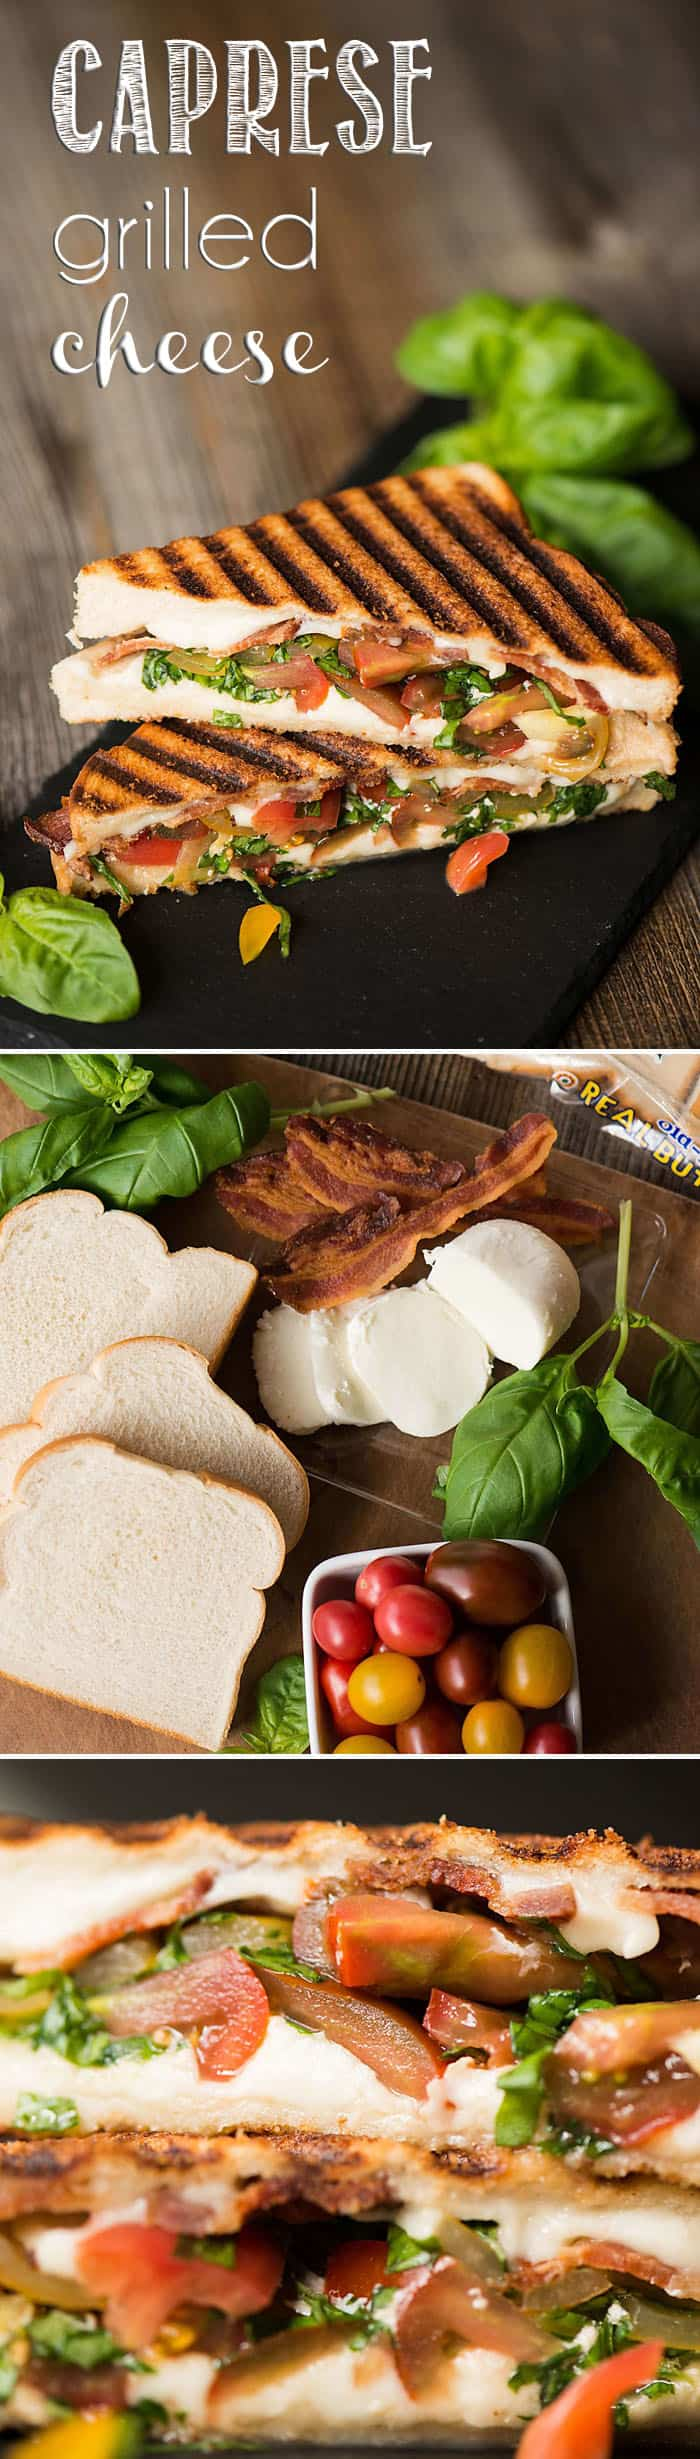 I can't think of a better lunch than this Caprese Grilled Cheese made with crisp bacon, soft mozzarella, tomatoes, basil, and super soft bread!